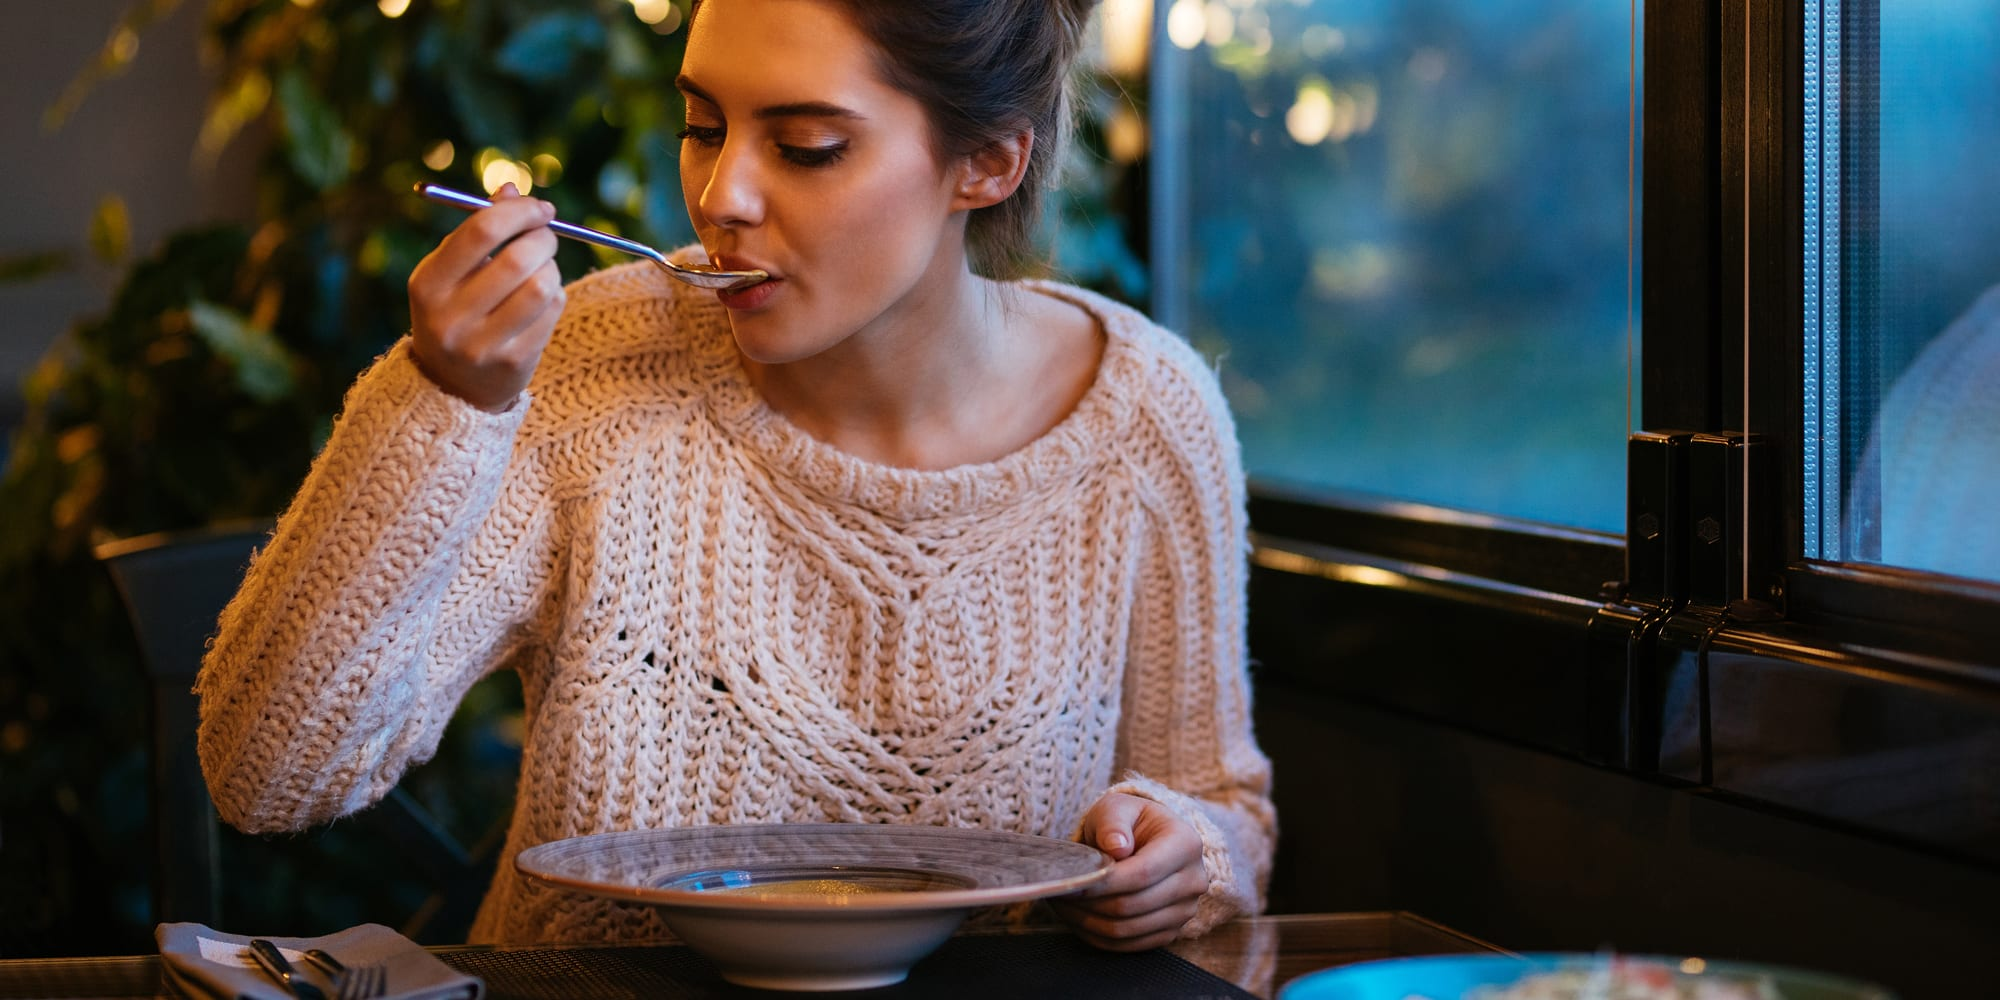 Can The Soup Diet Really Help You Lose Weight?